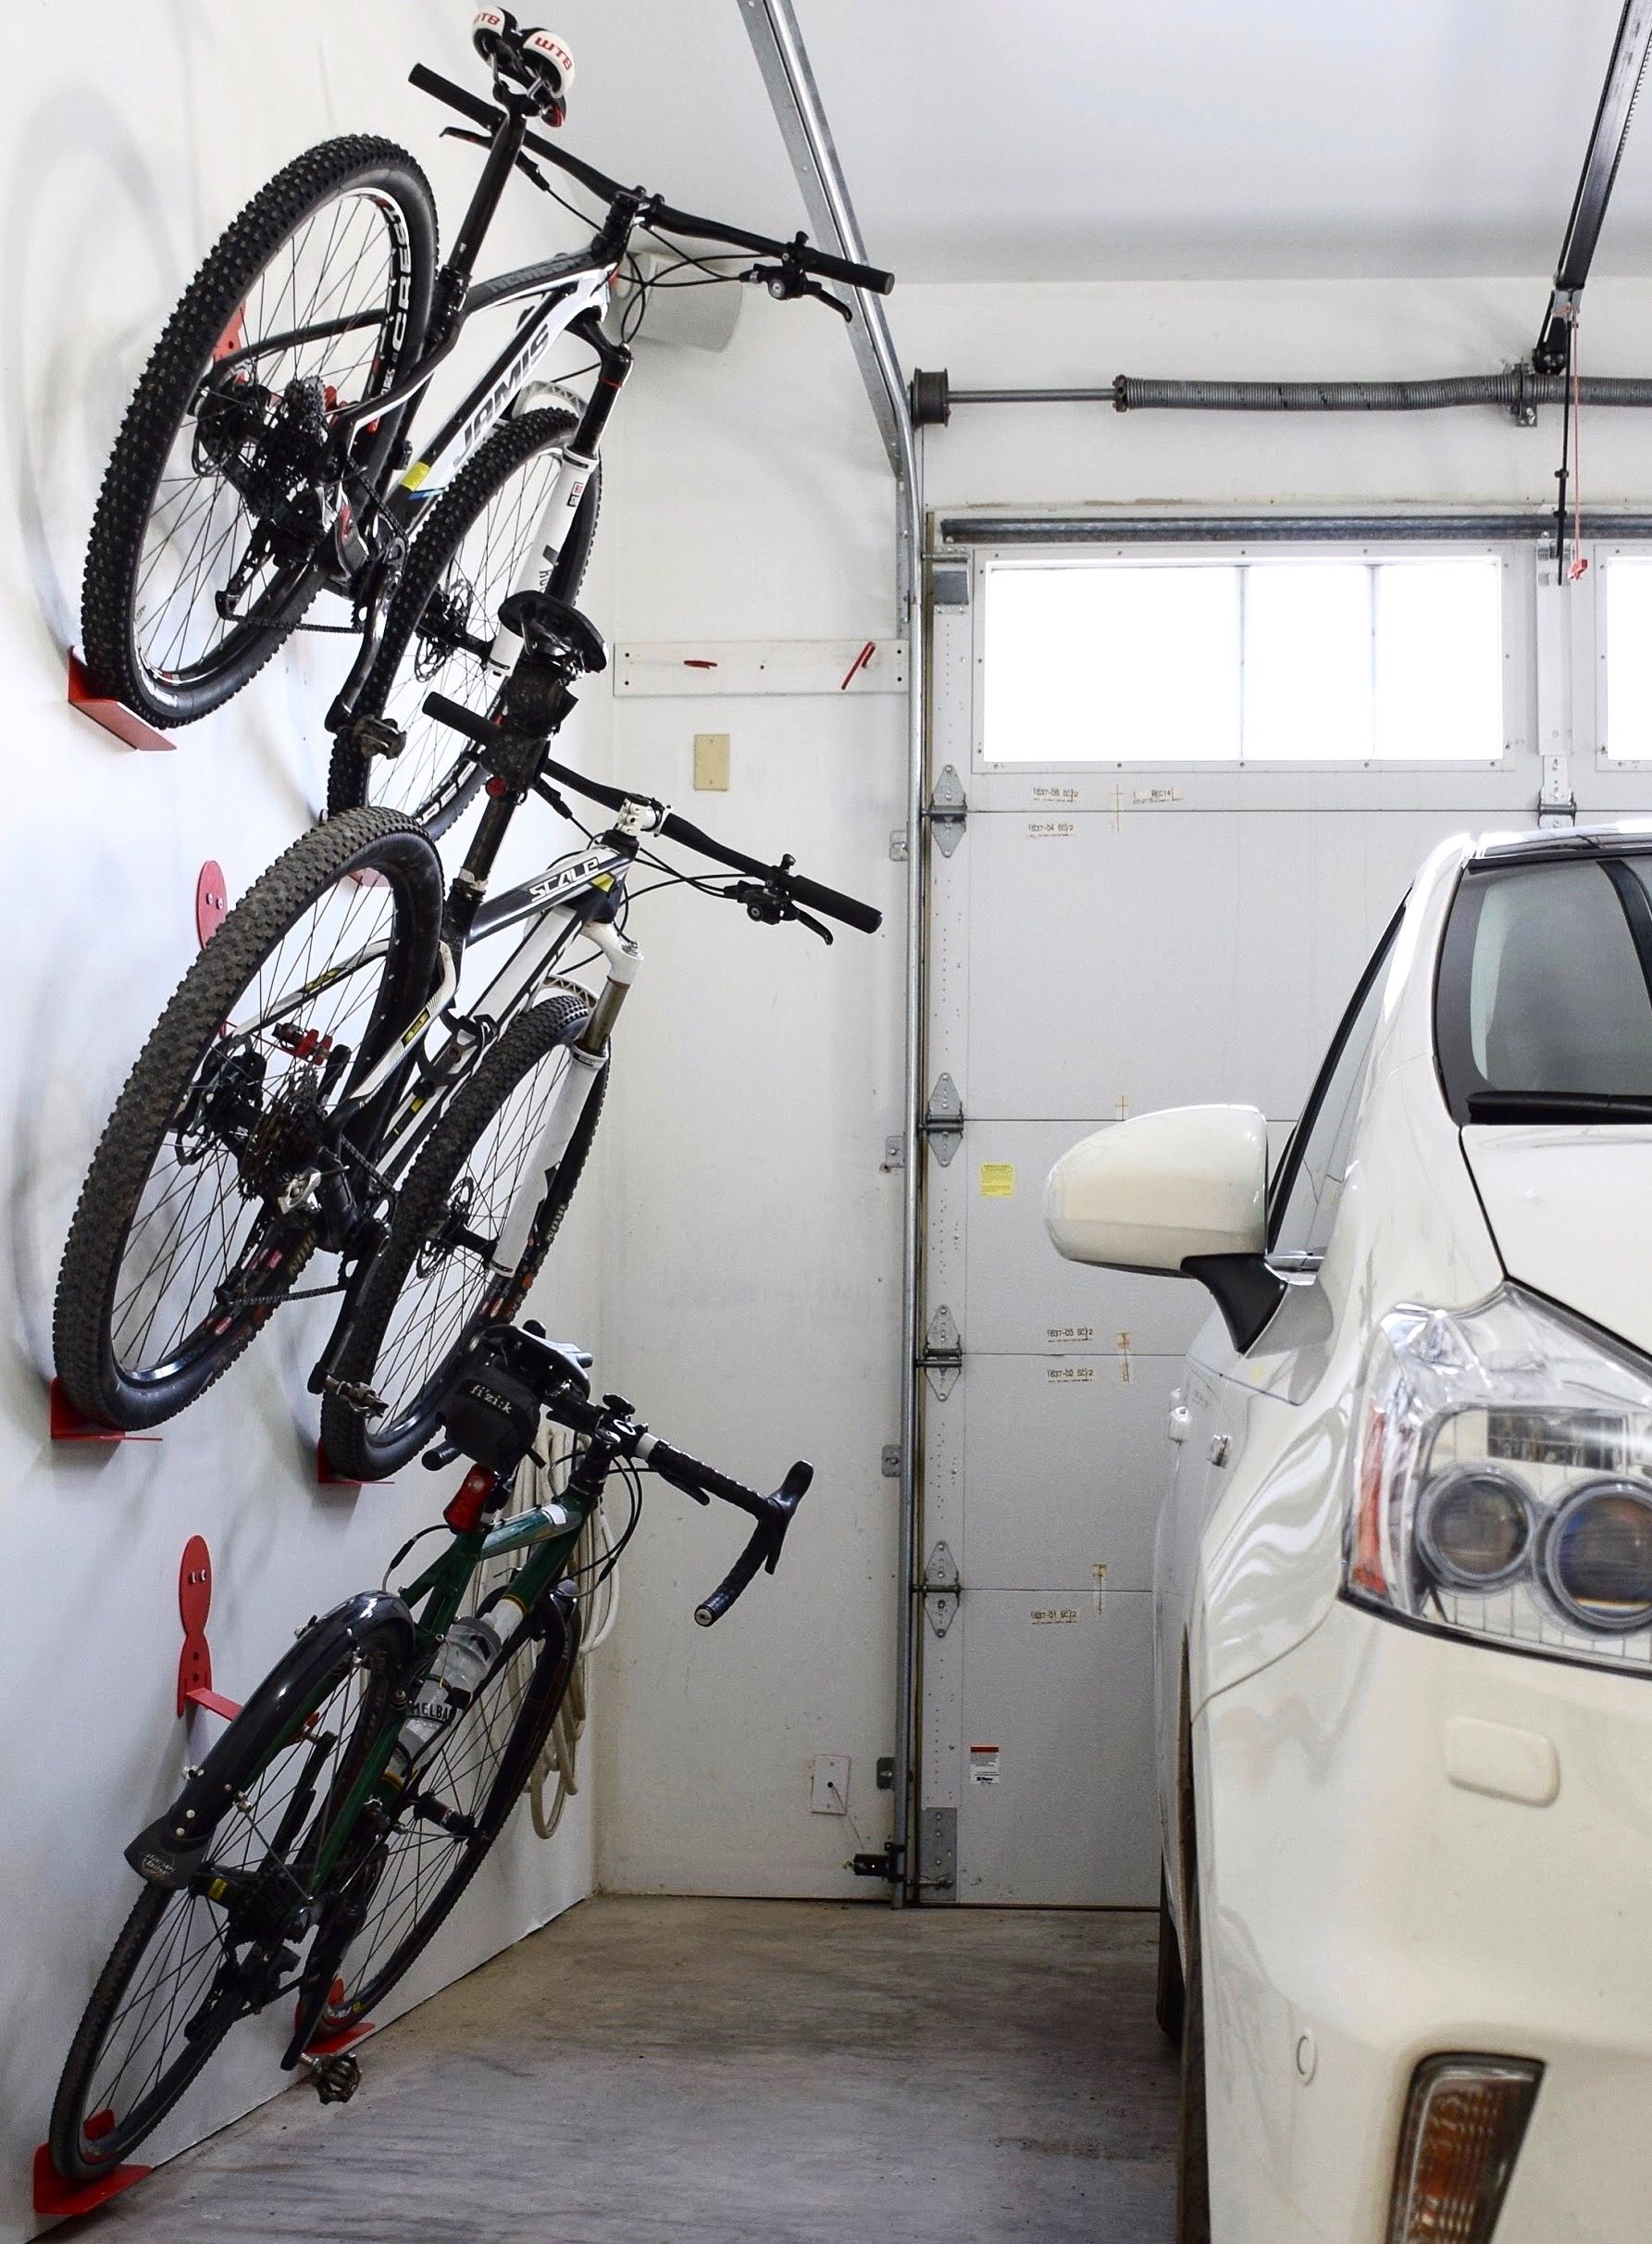 uses lift rack level to lowering overhead ahd garage systems ceilings floor gator ceiling storage popular bike